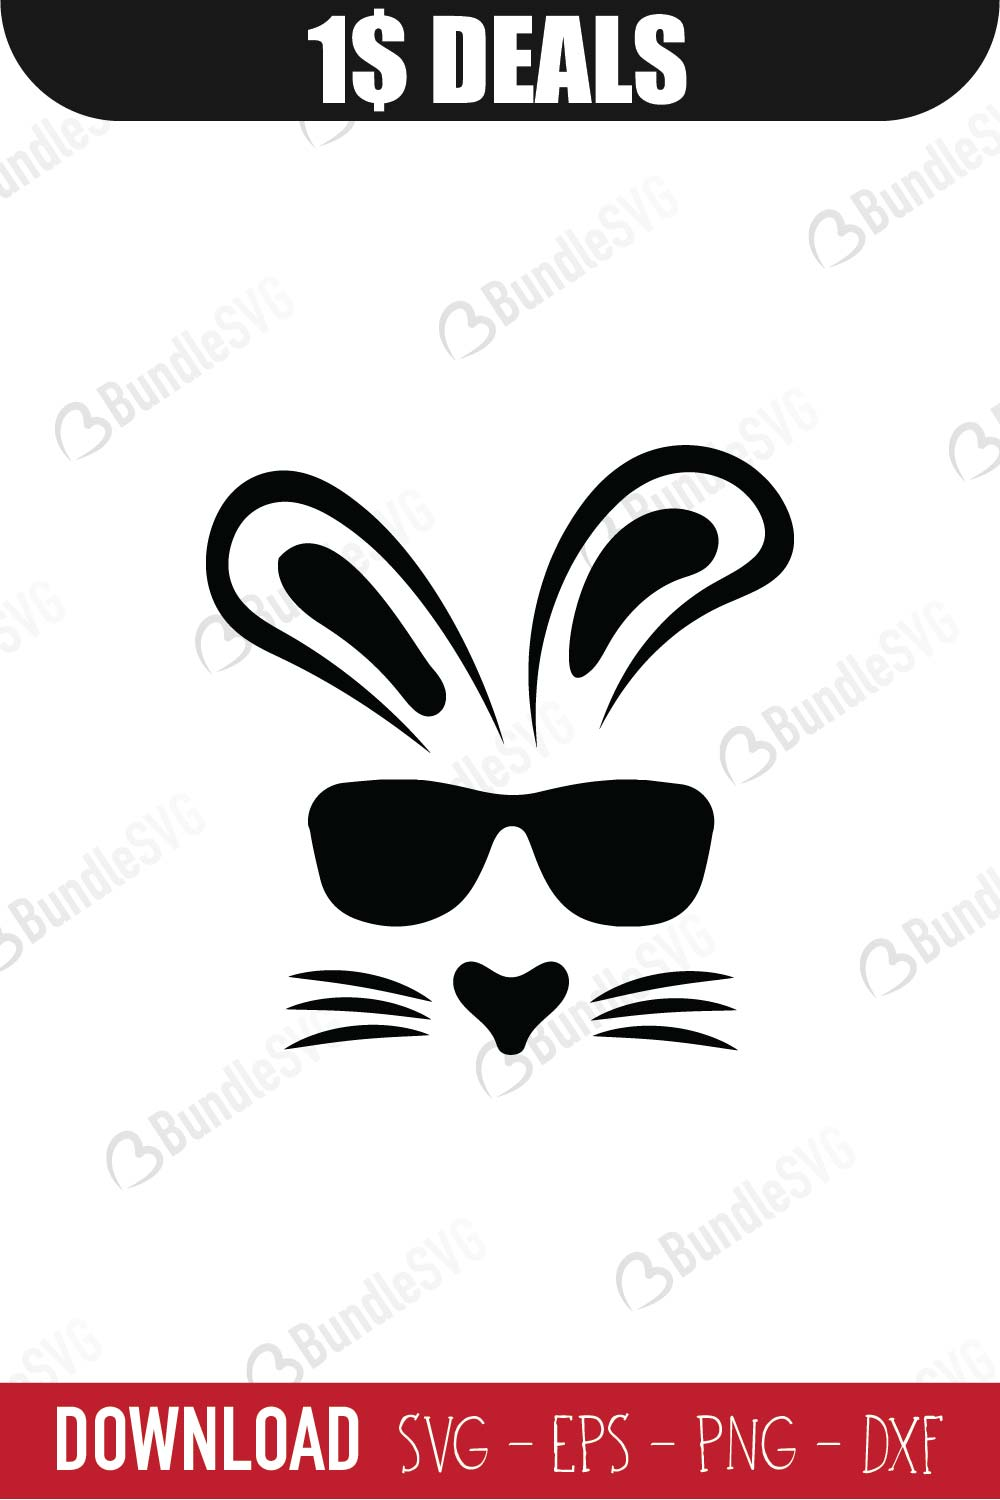 Bunny Face Svg : bunny, Bunny, Easter, Download, BundleSVG